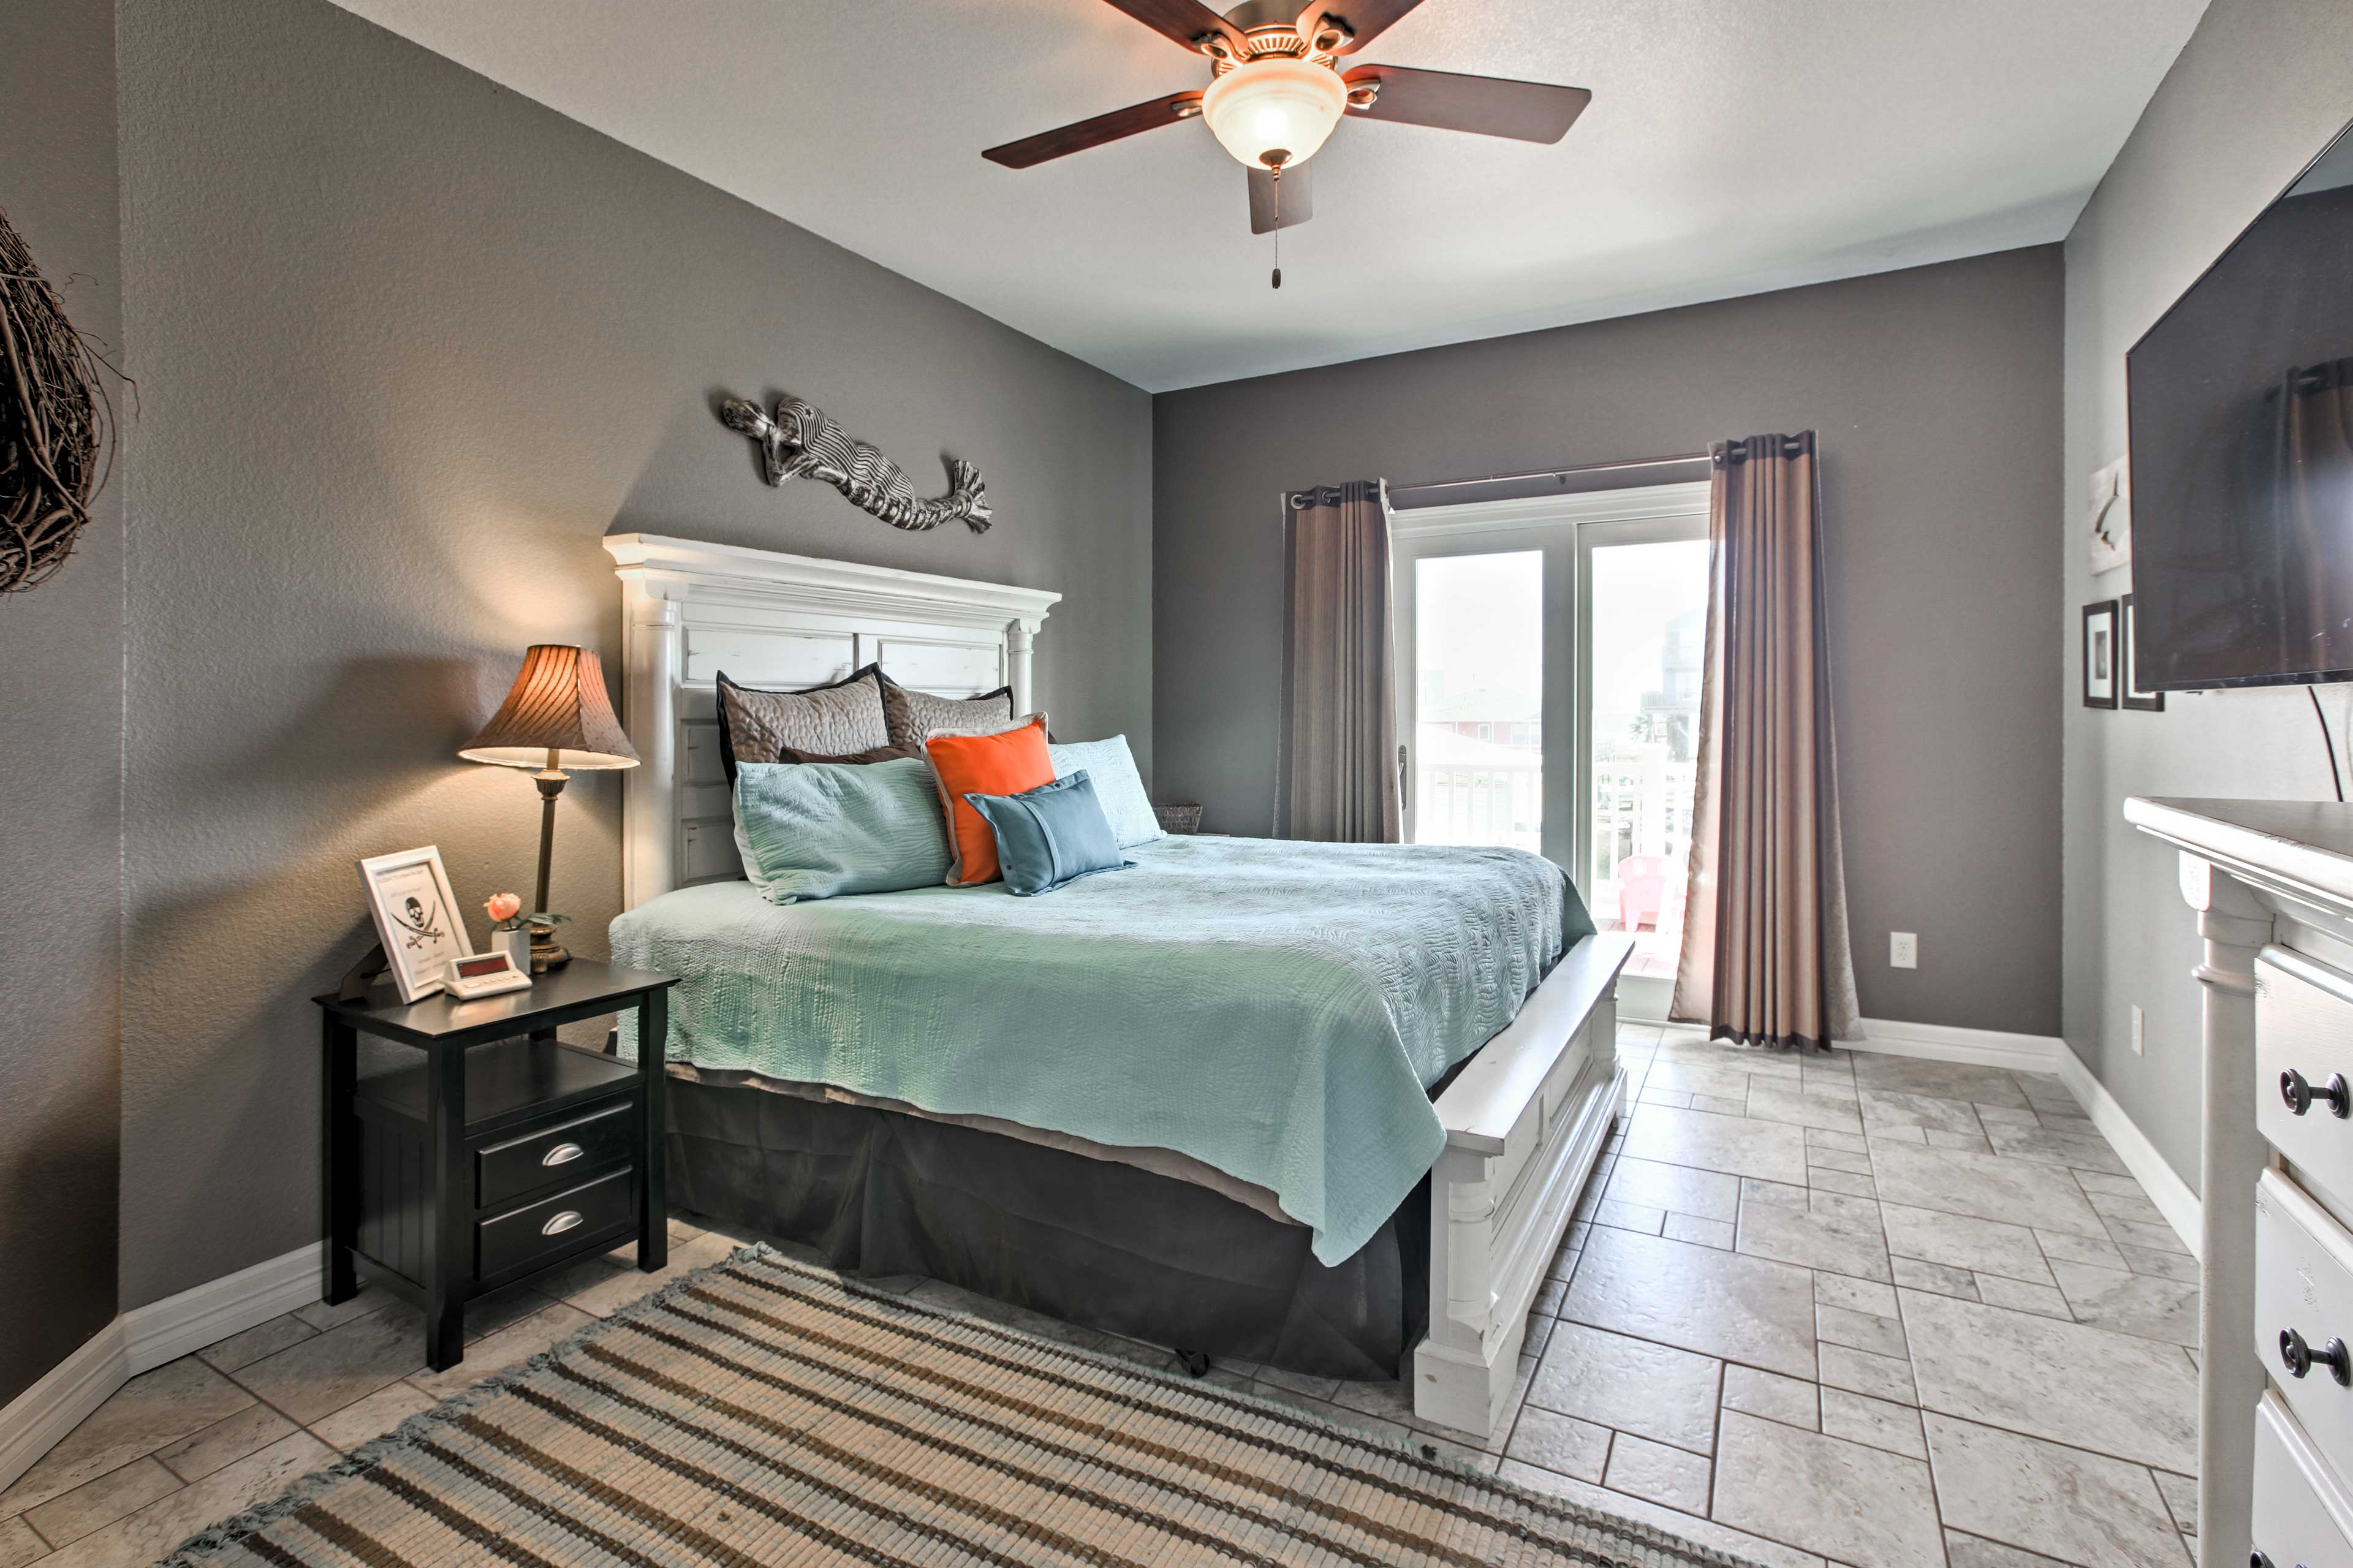 Everyone is sure to get a restful night's sleep in one of the 5 bedrooms.